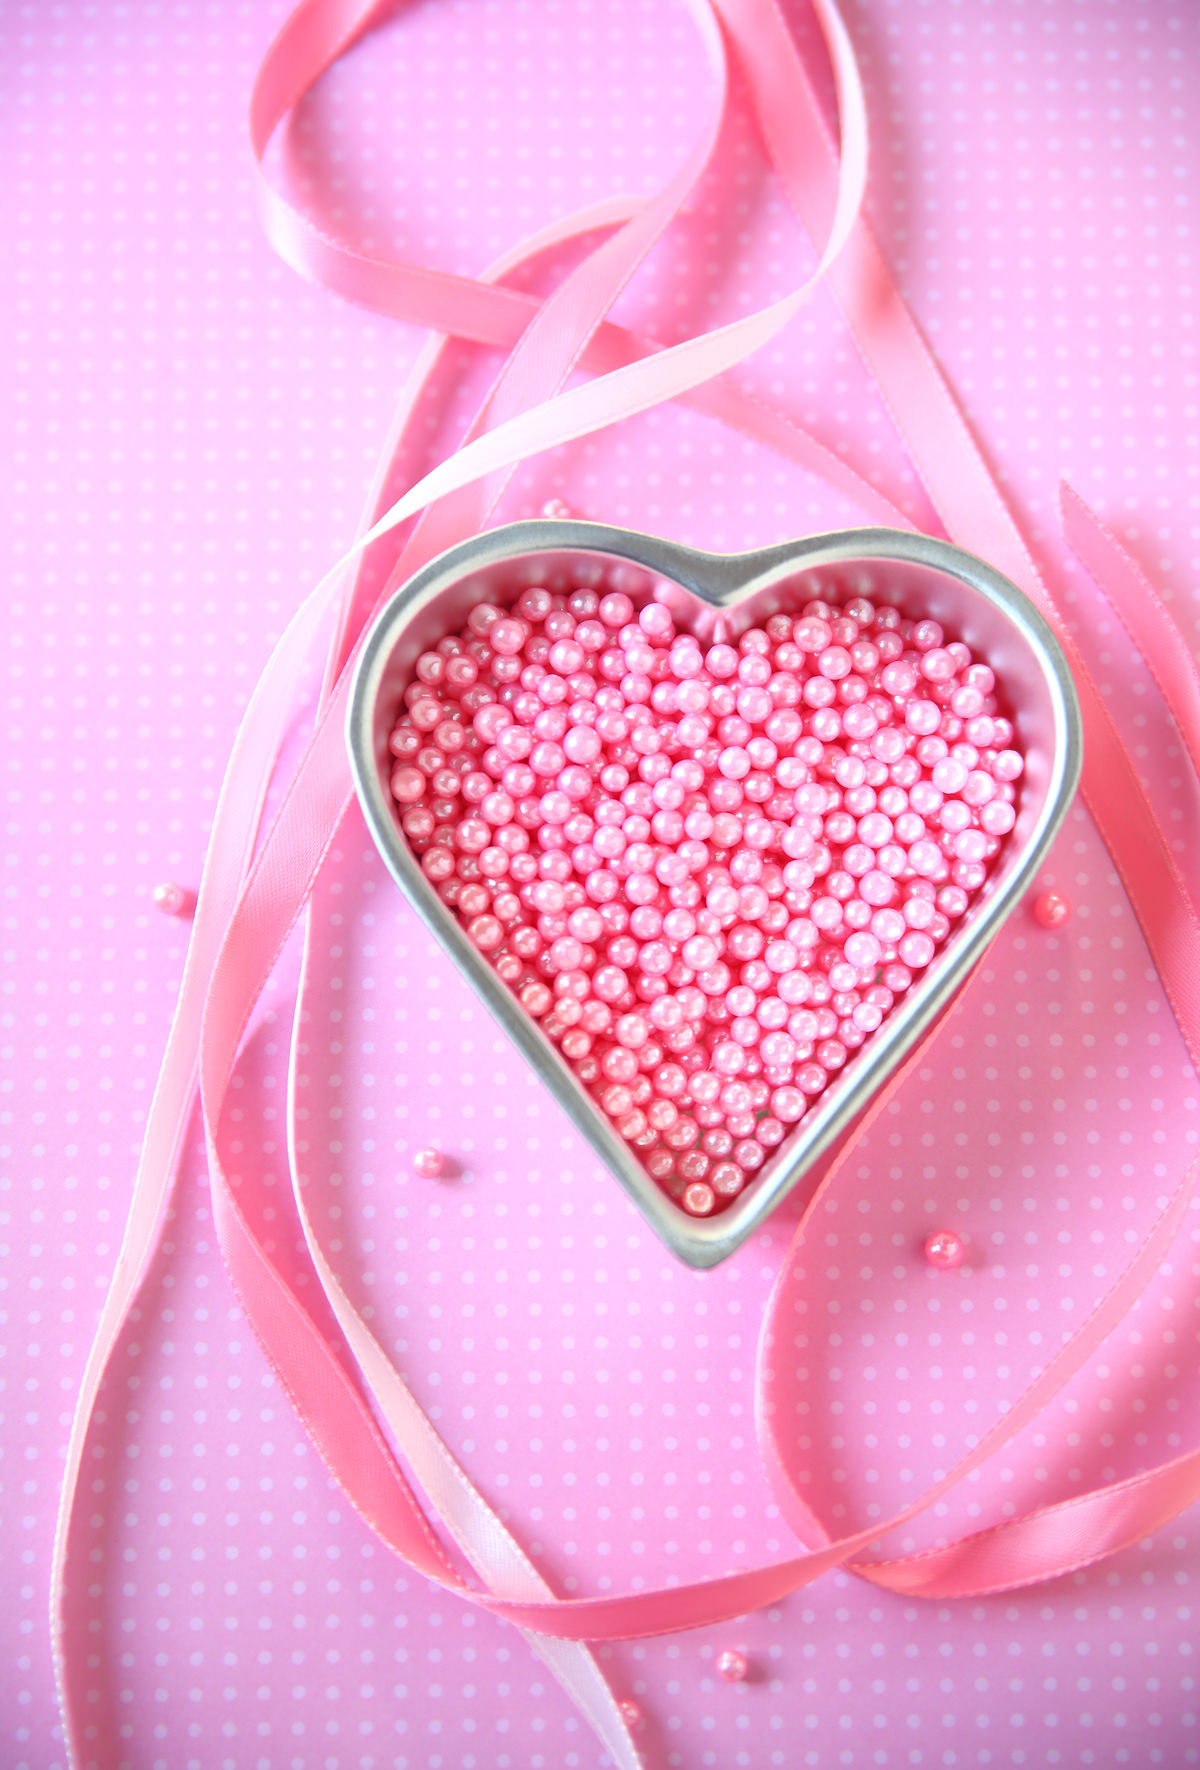 Pink beads in heart pan on polka dots Candy Close-up Colored Background Day Decorative Feminine  Girly Heart Shape Indoors  Love Natural Light No People One Color Overhead Pastel Colored Pattern Pink Background Pink Color Pink Ribbons Polka Dot Studio Shot Sweet Food Valentine's Day - Holiday Vertical